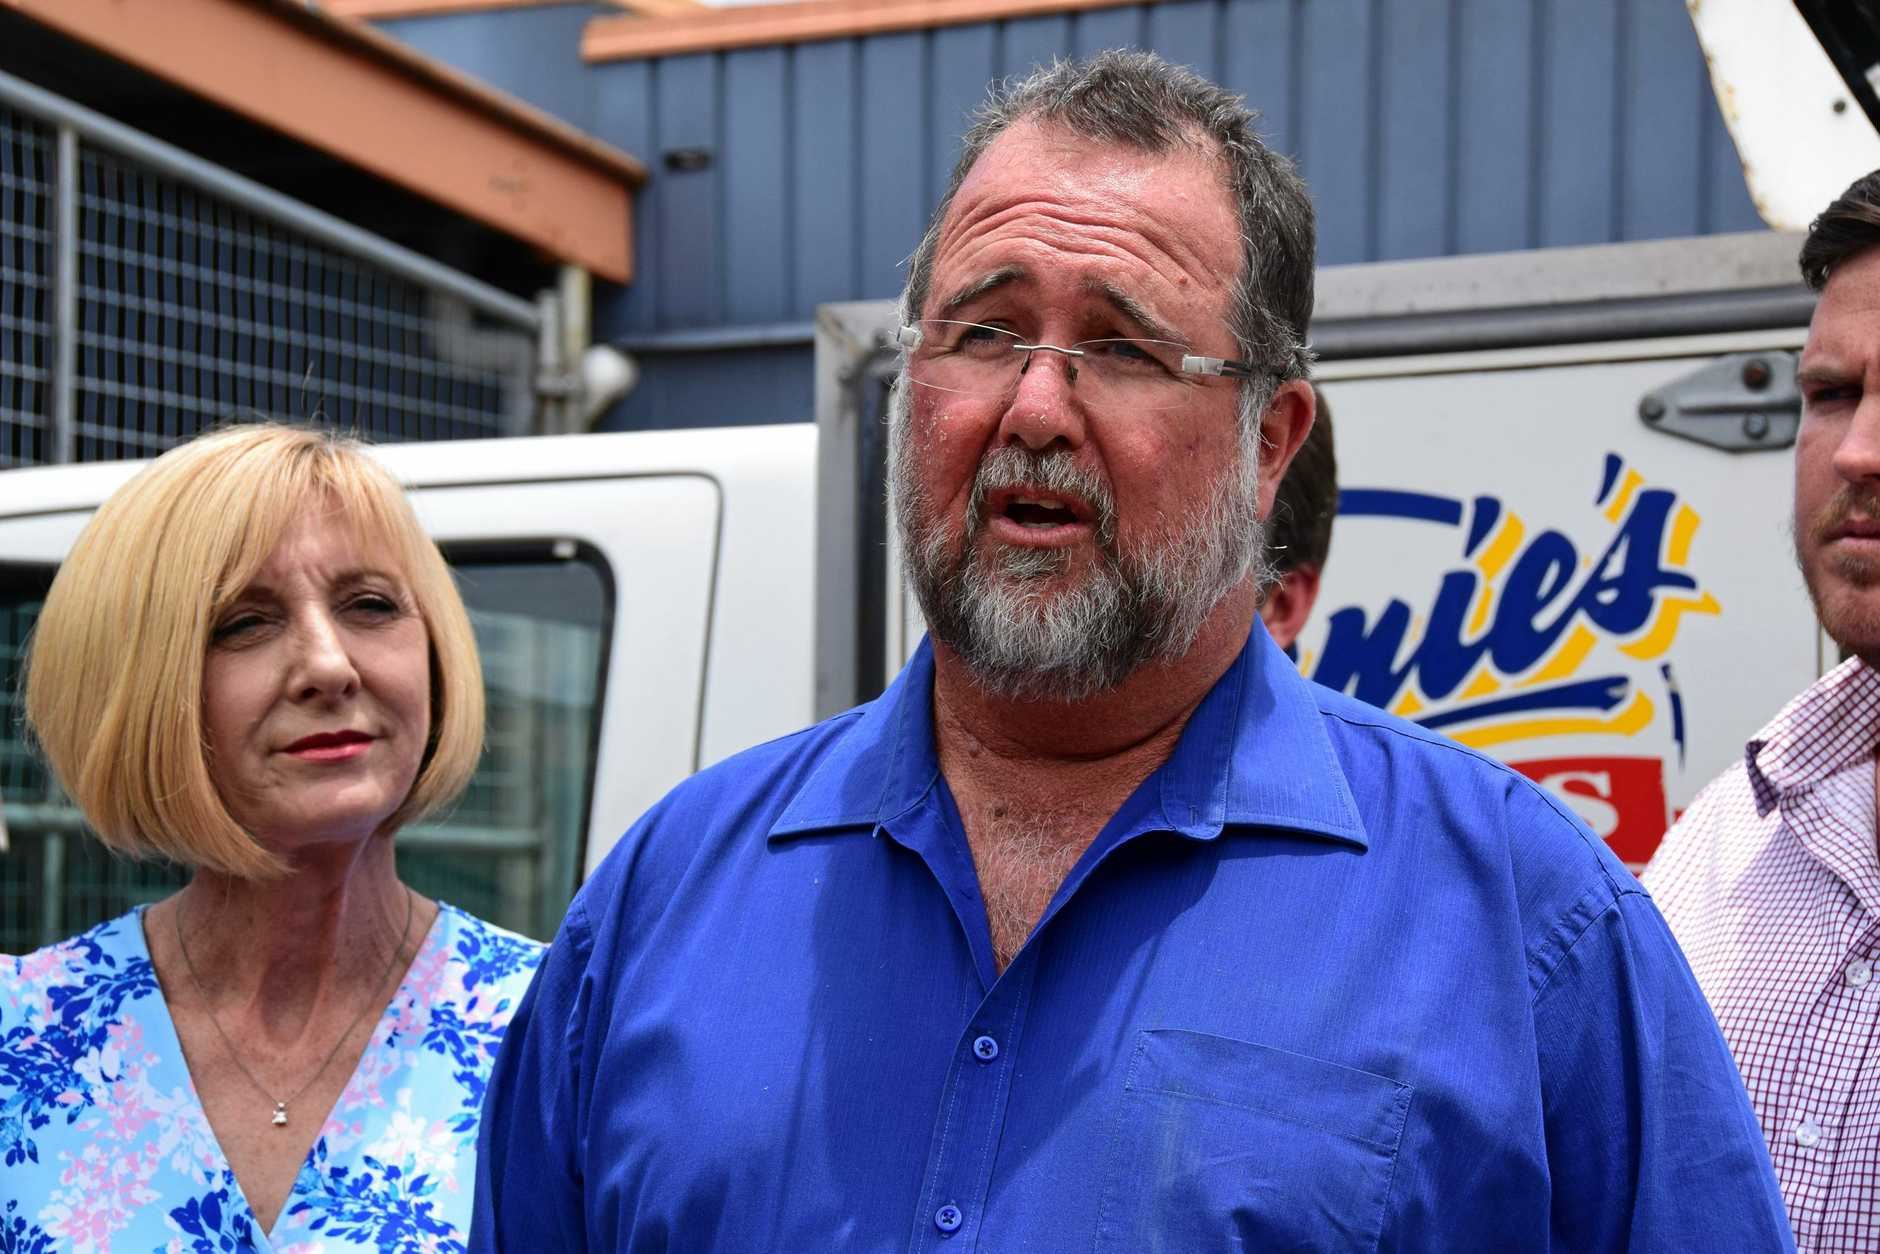 LNP Keppell candidate Peter Blundell.